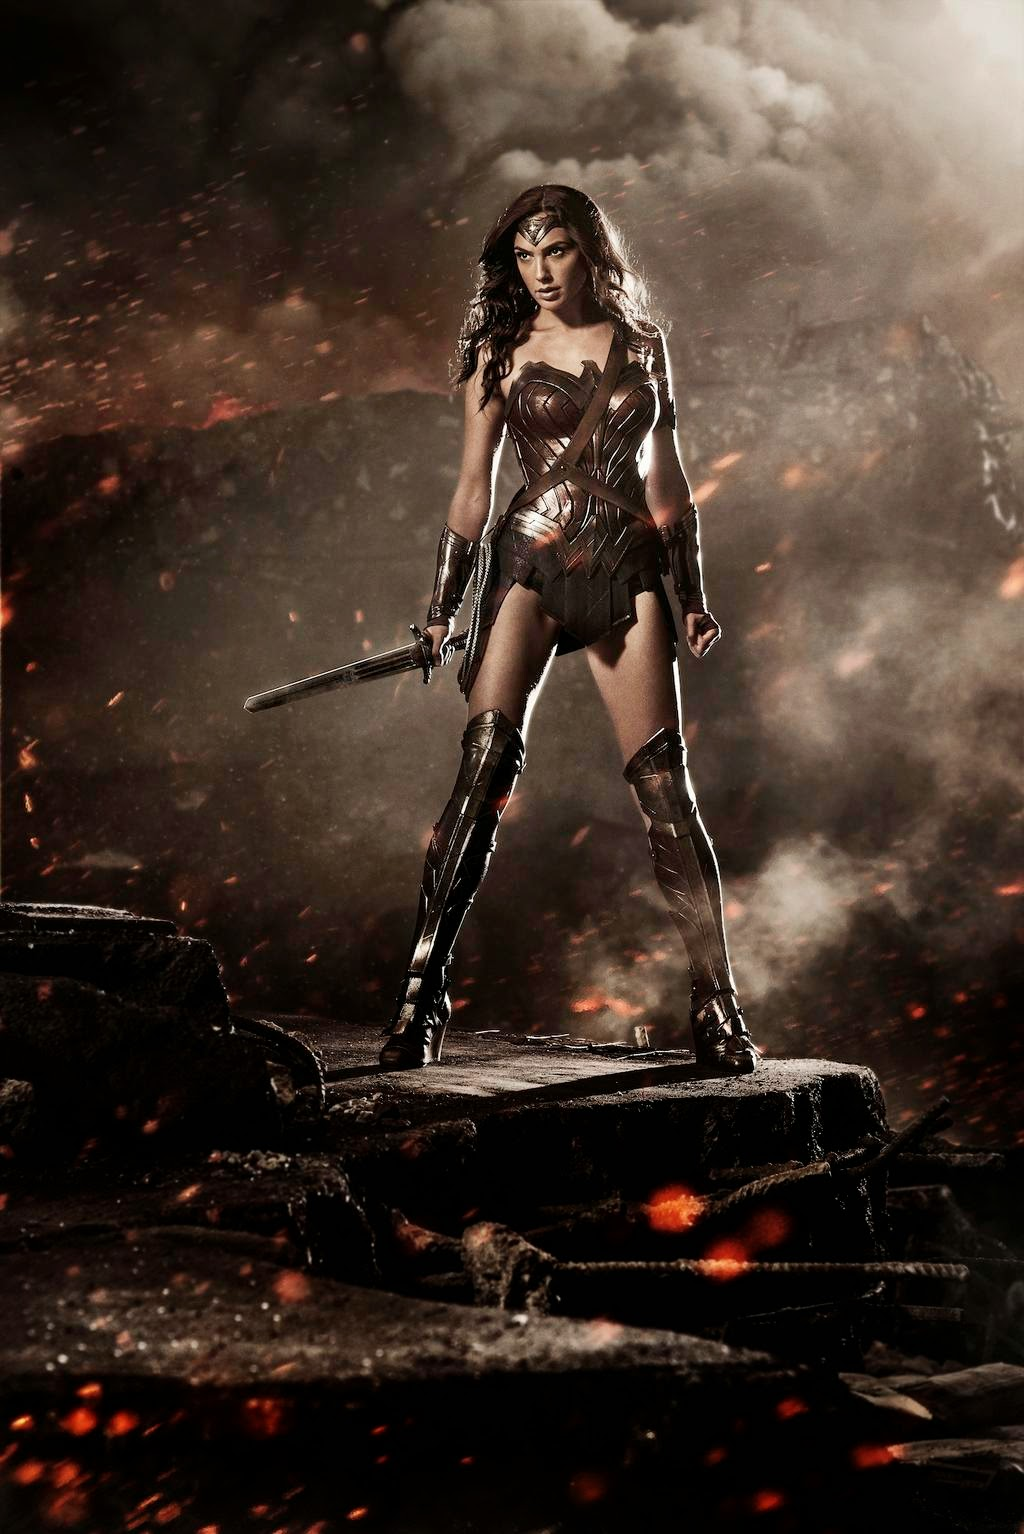 News and Rumors on Wonder Woman's role in Batman vs. Superman